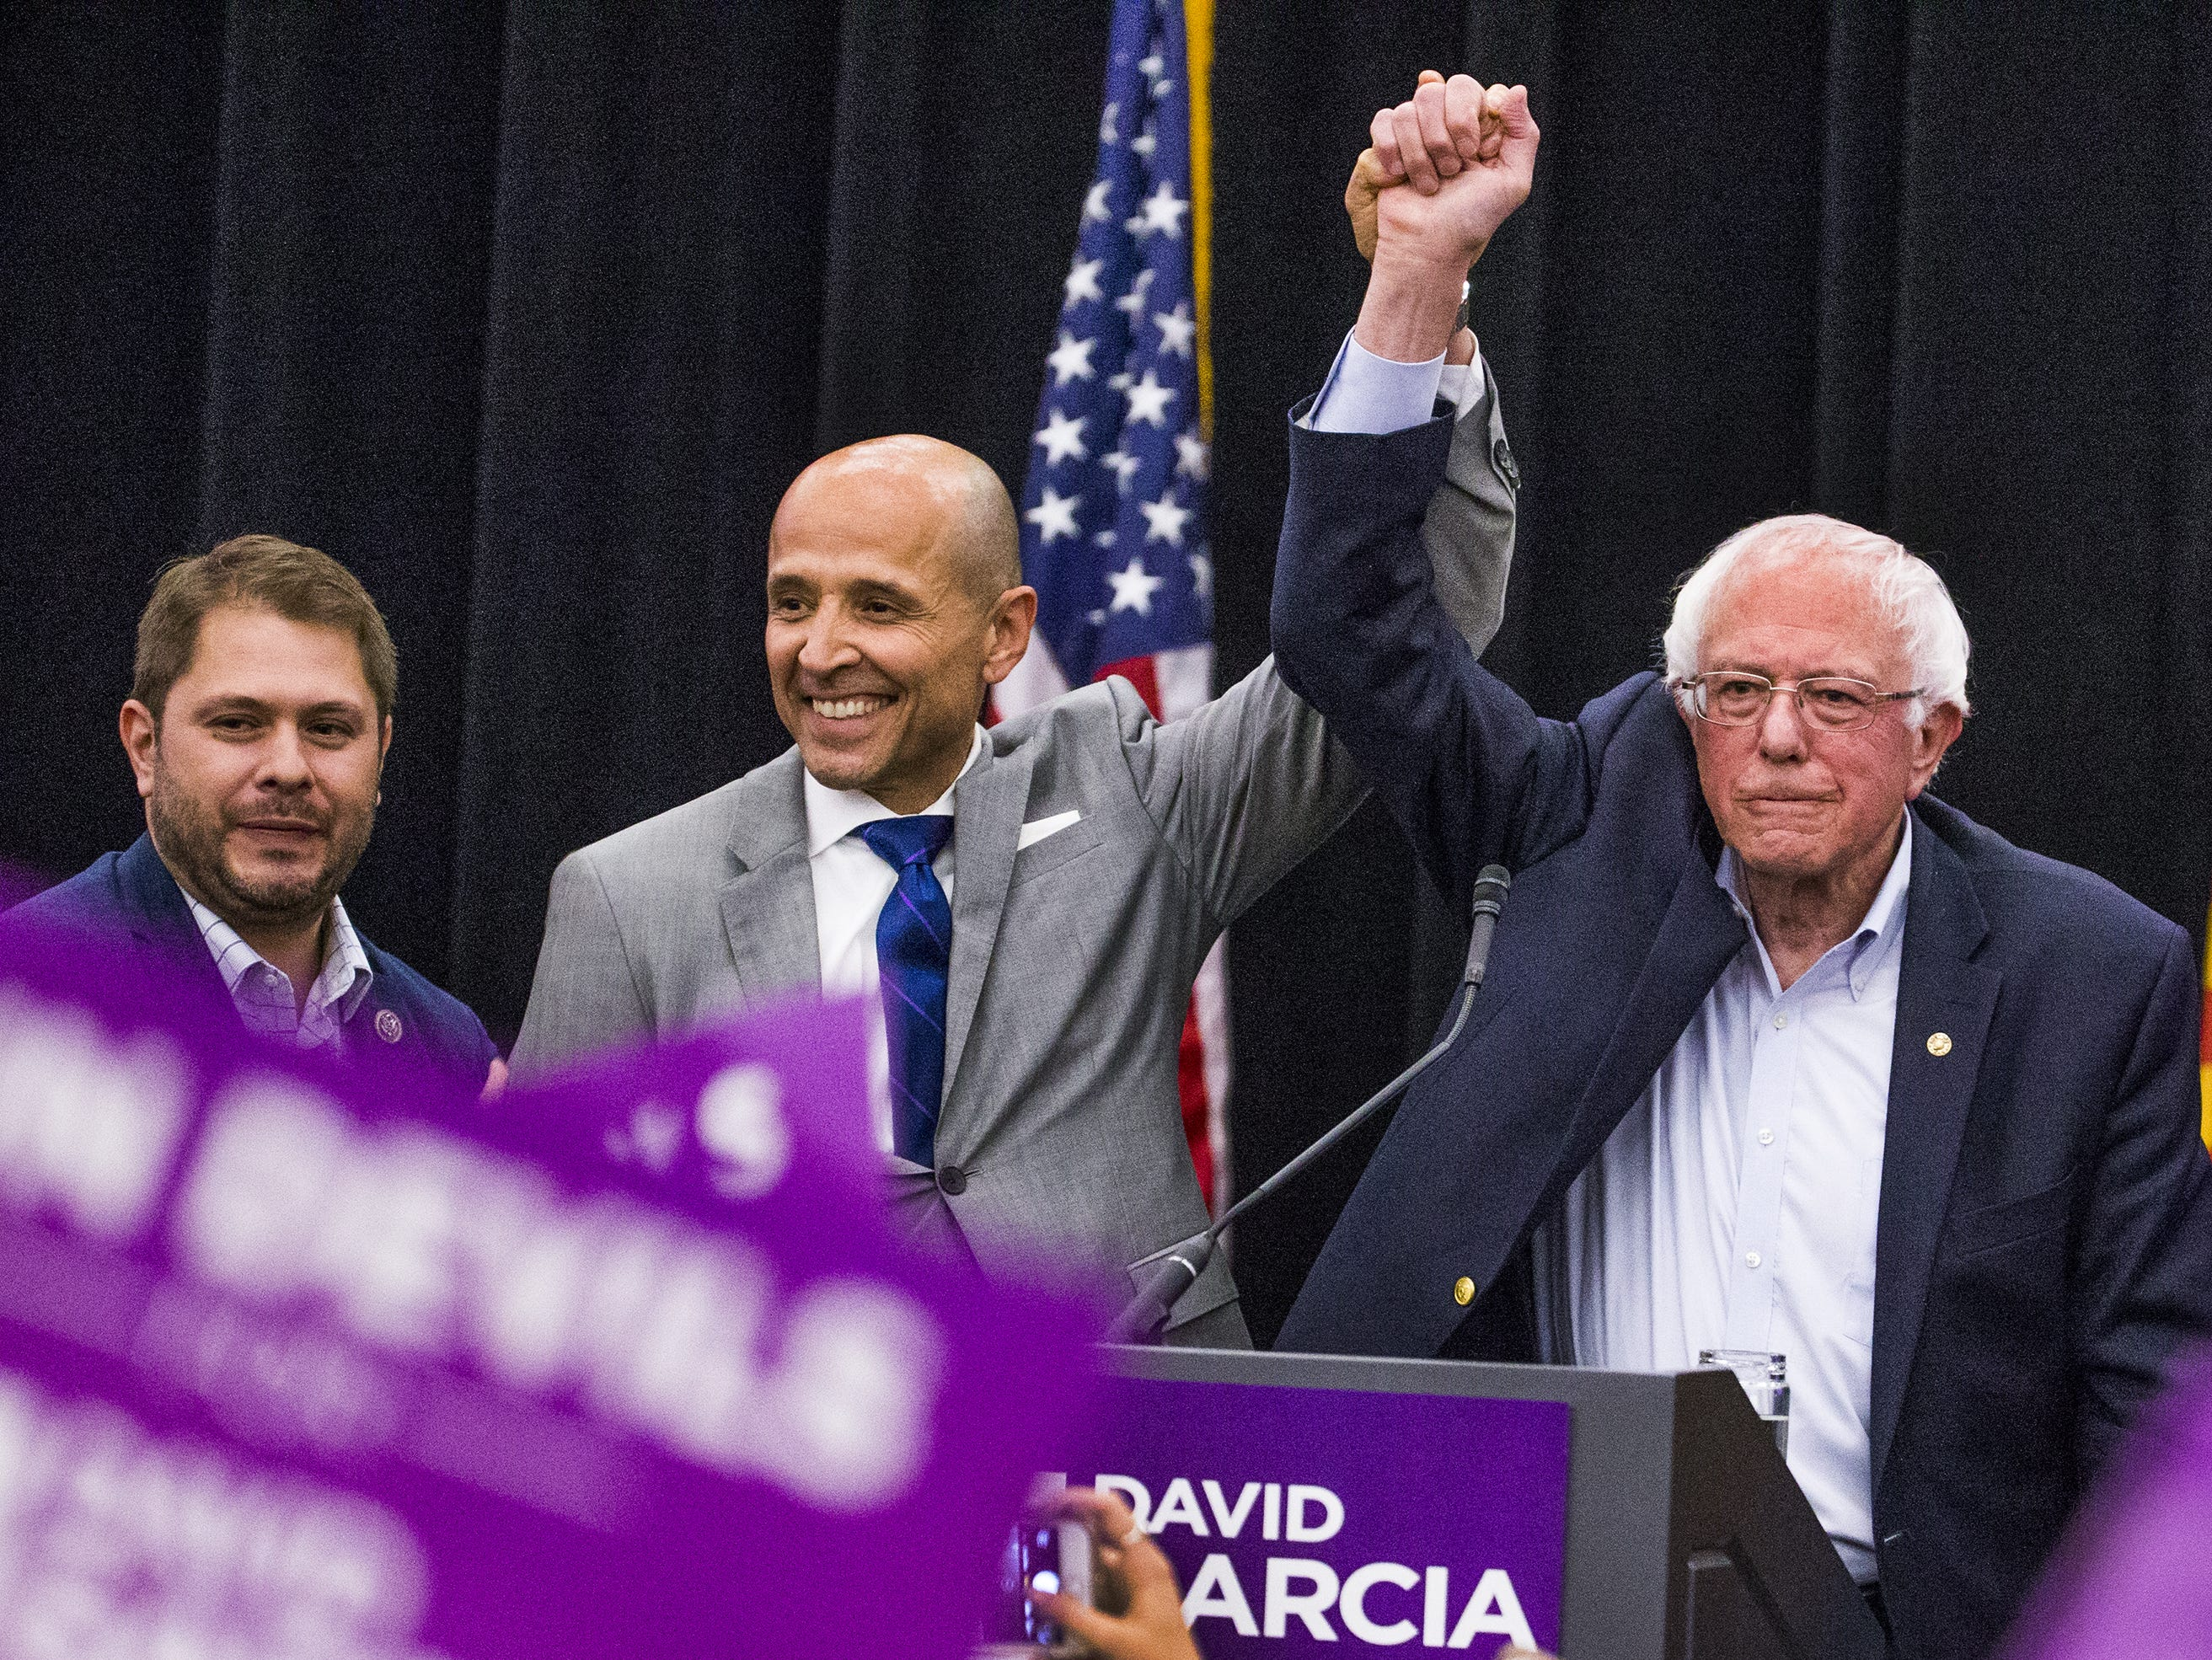 Rep. Ruben Gallego, left, and Sen. Bernie Sanders, right, endorse David Garcia for governor during a rally at Arizona State University, Tuesday, October 23, 2018.  The event was hosted by ASU Young Democrats.